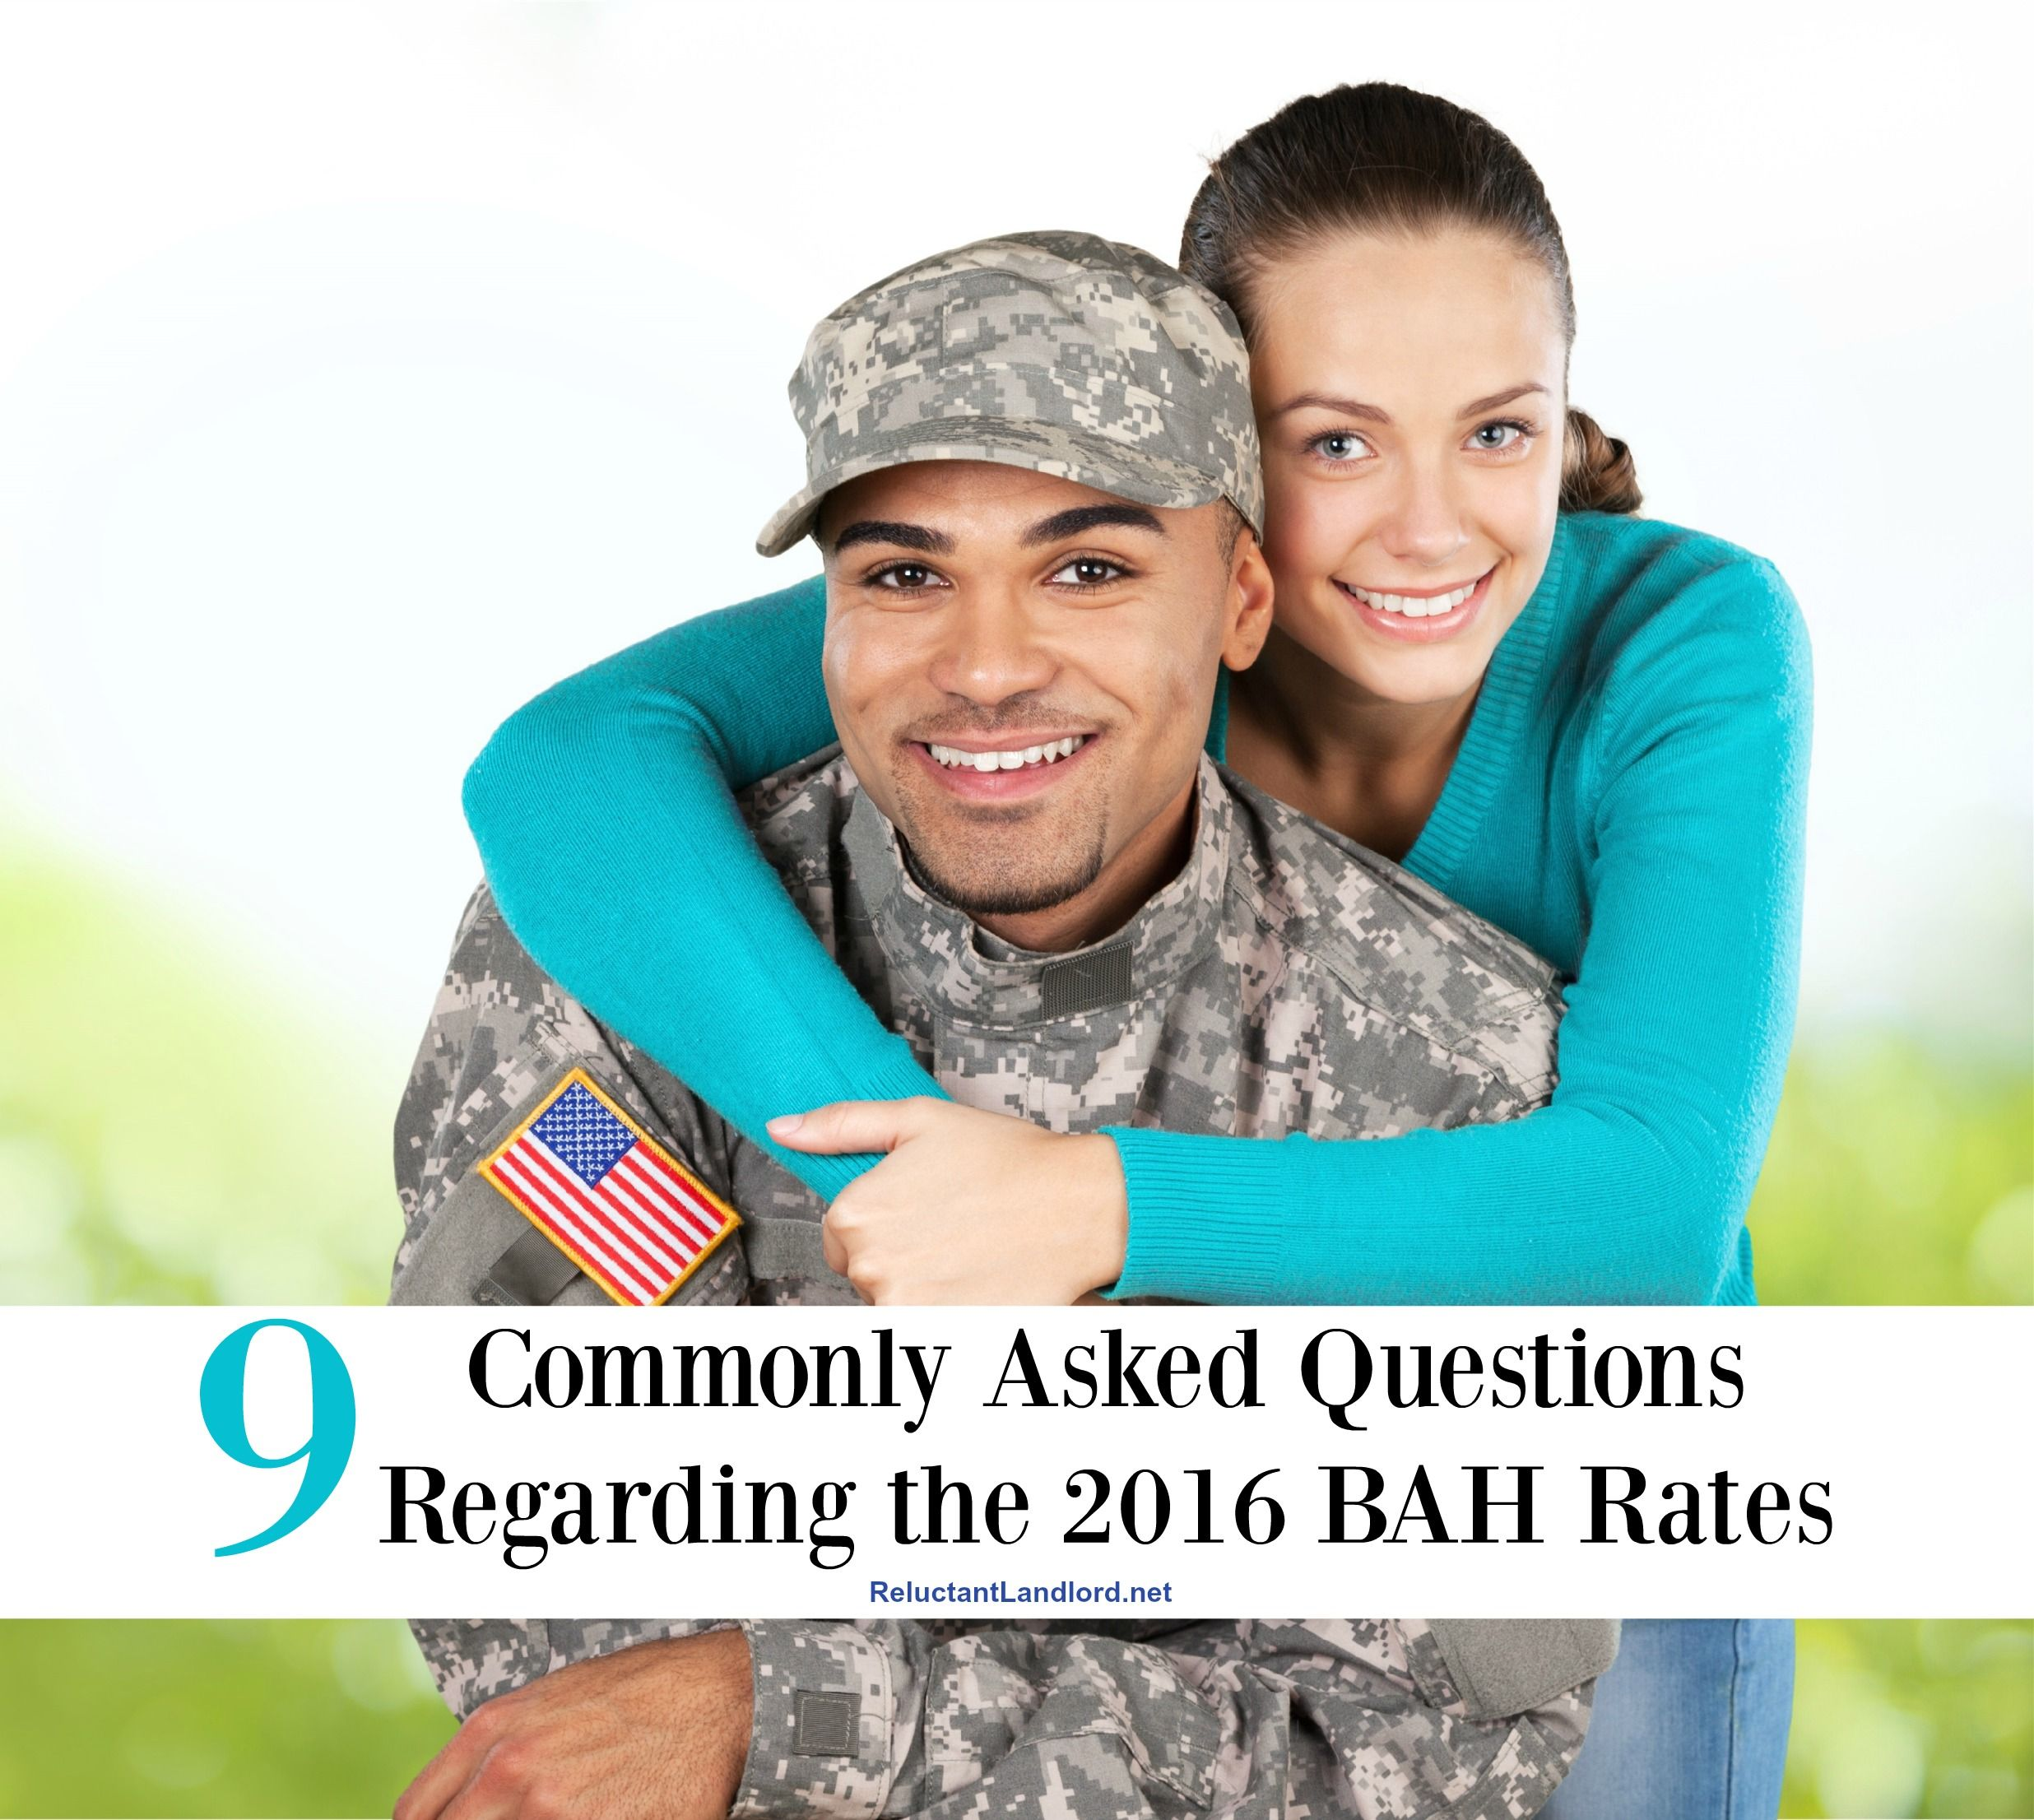 9 Commonly Asked Questions Regarding the 2016 BAH Rates